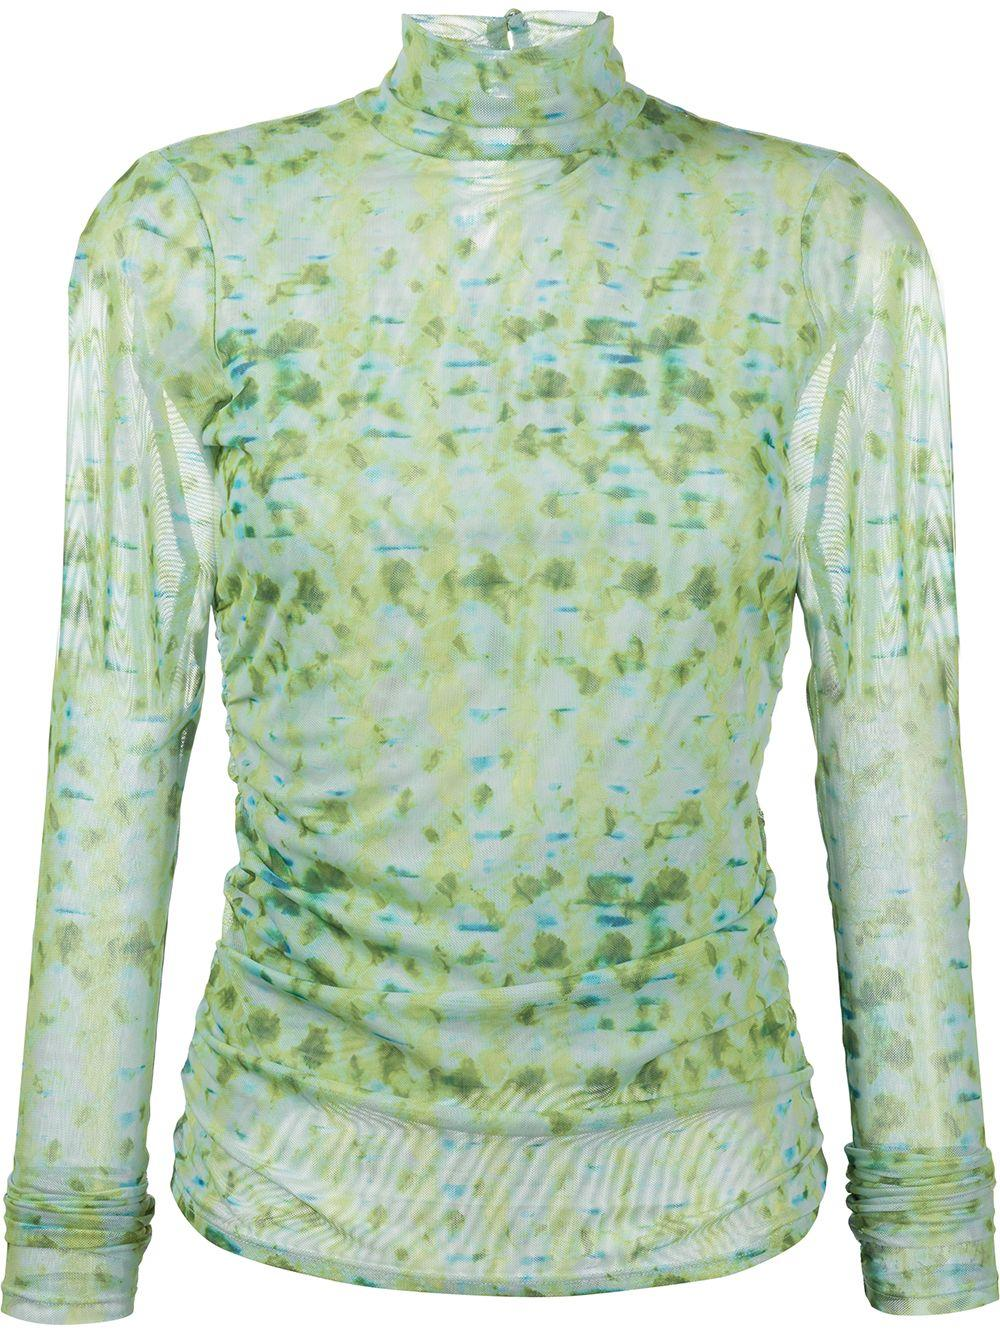 Shirred Tie-Dye Turtleneck